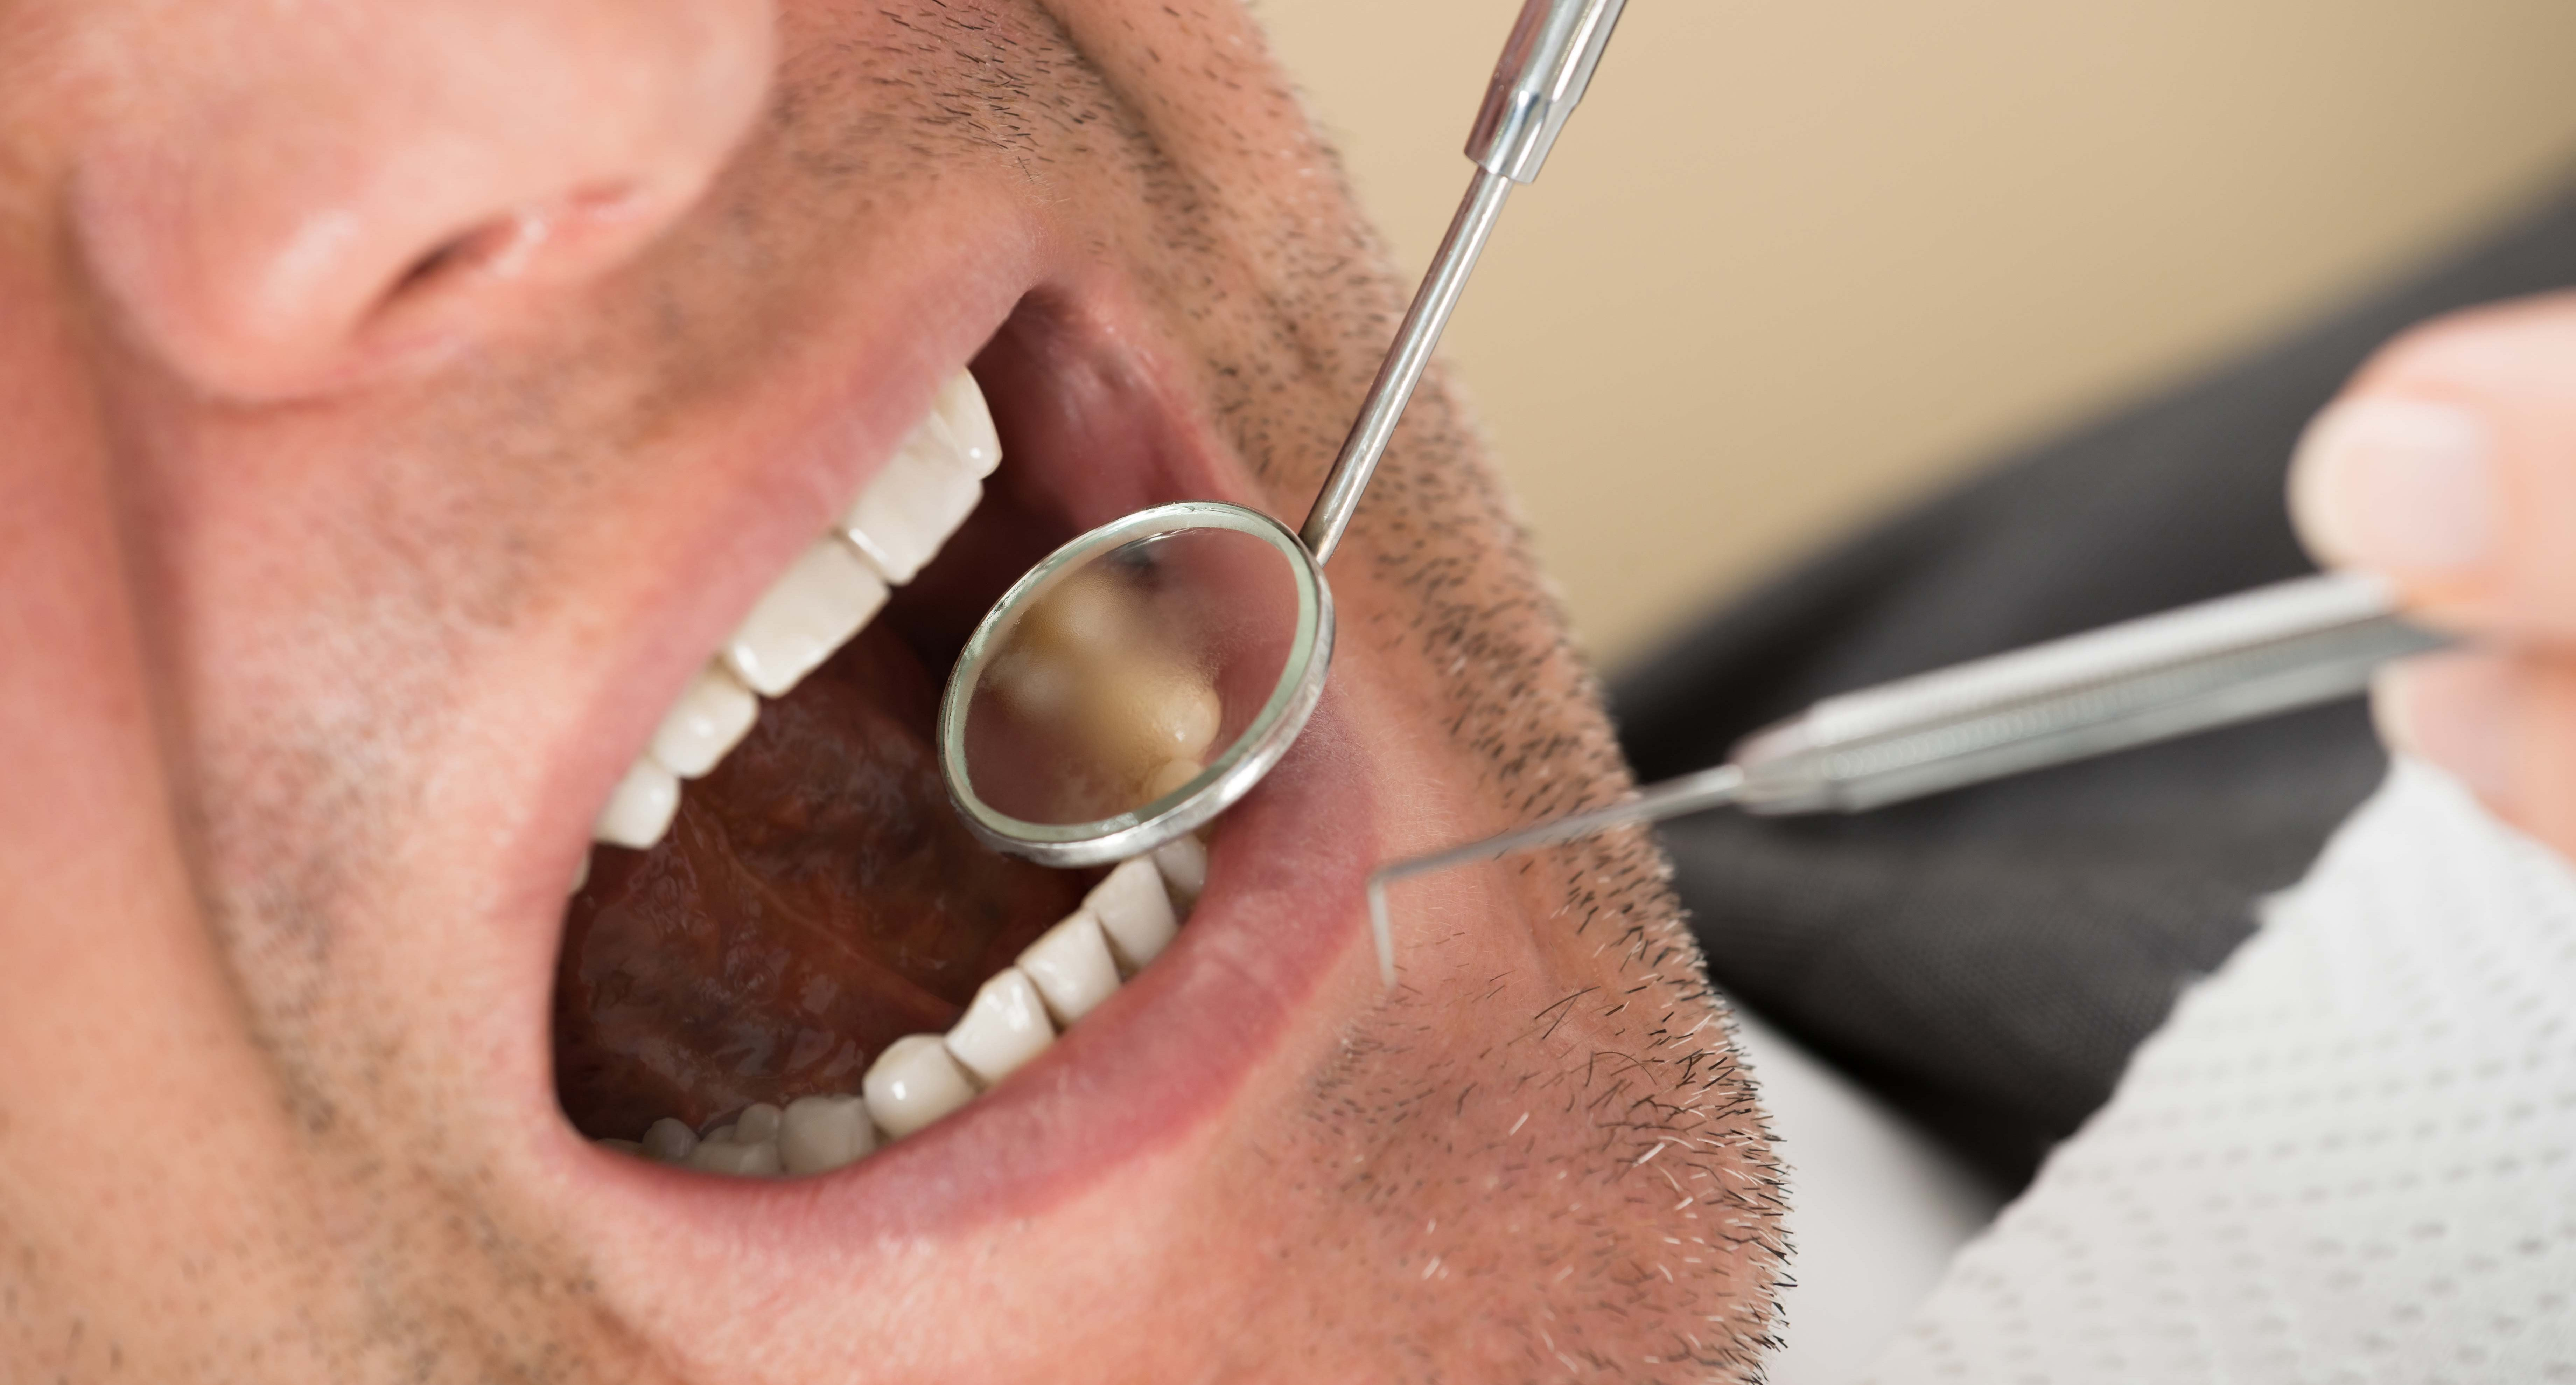 Half of adults in the UK visiting an NHS dentist